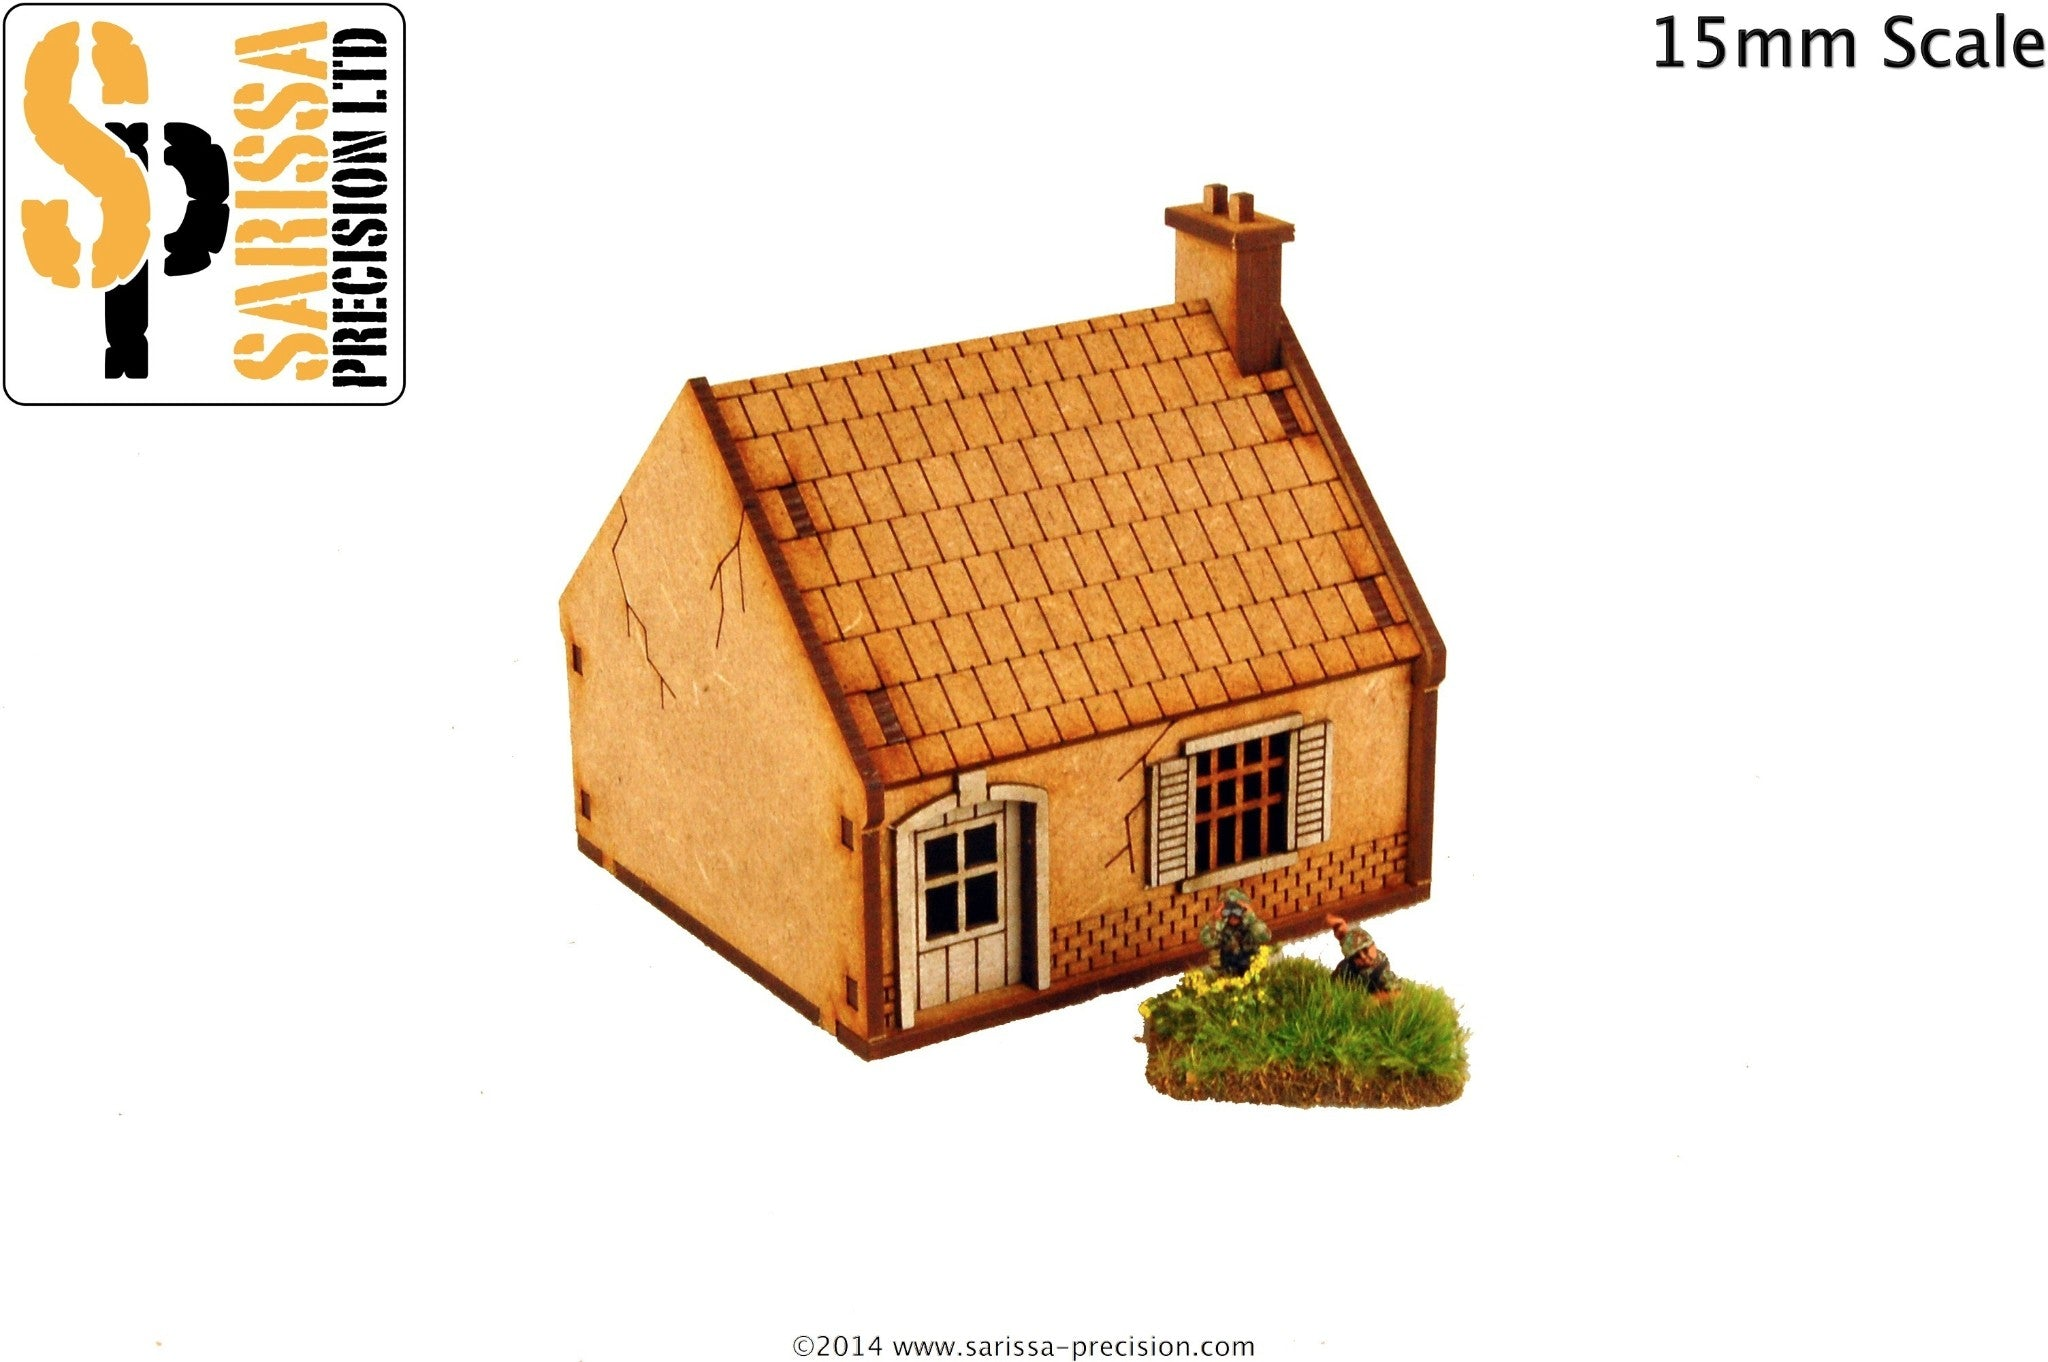 Single-Storey House - 15mm